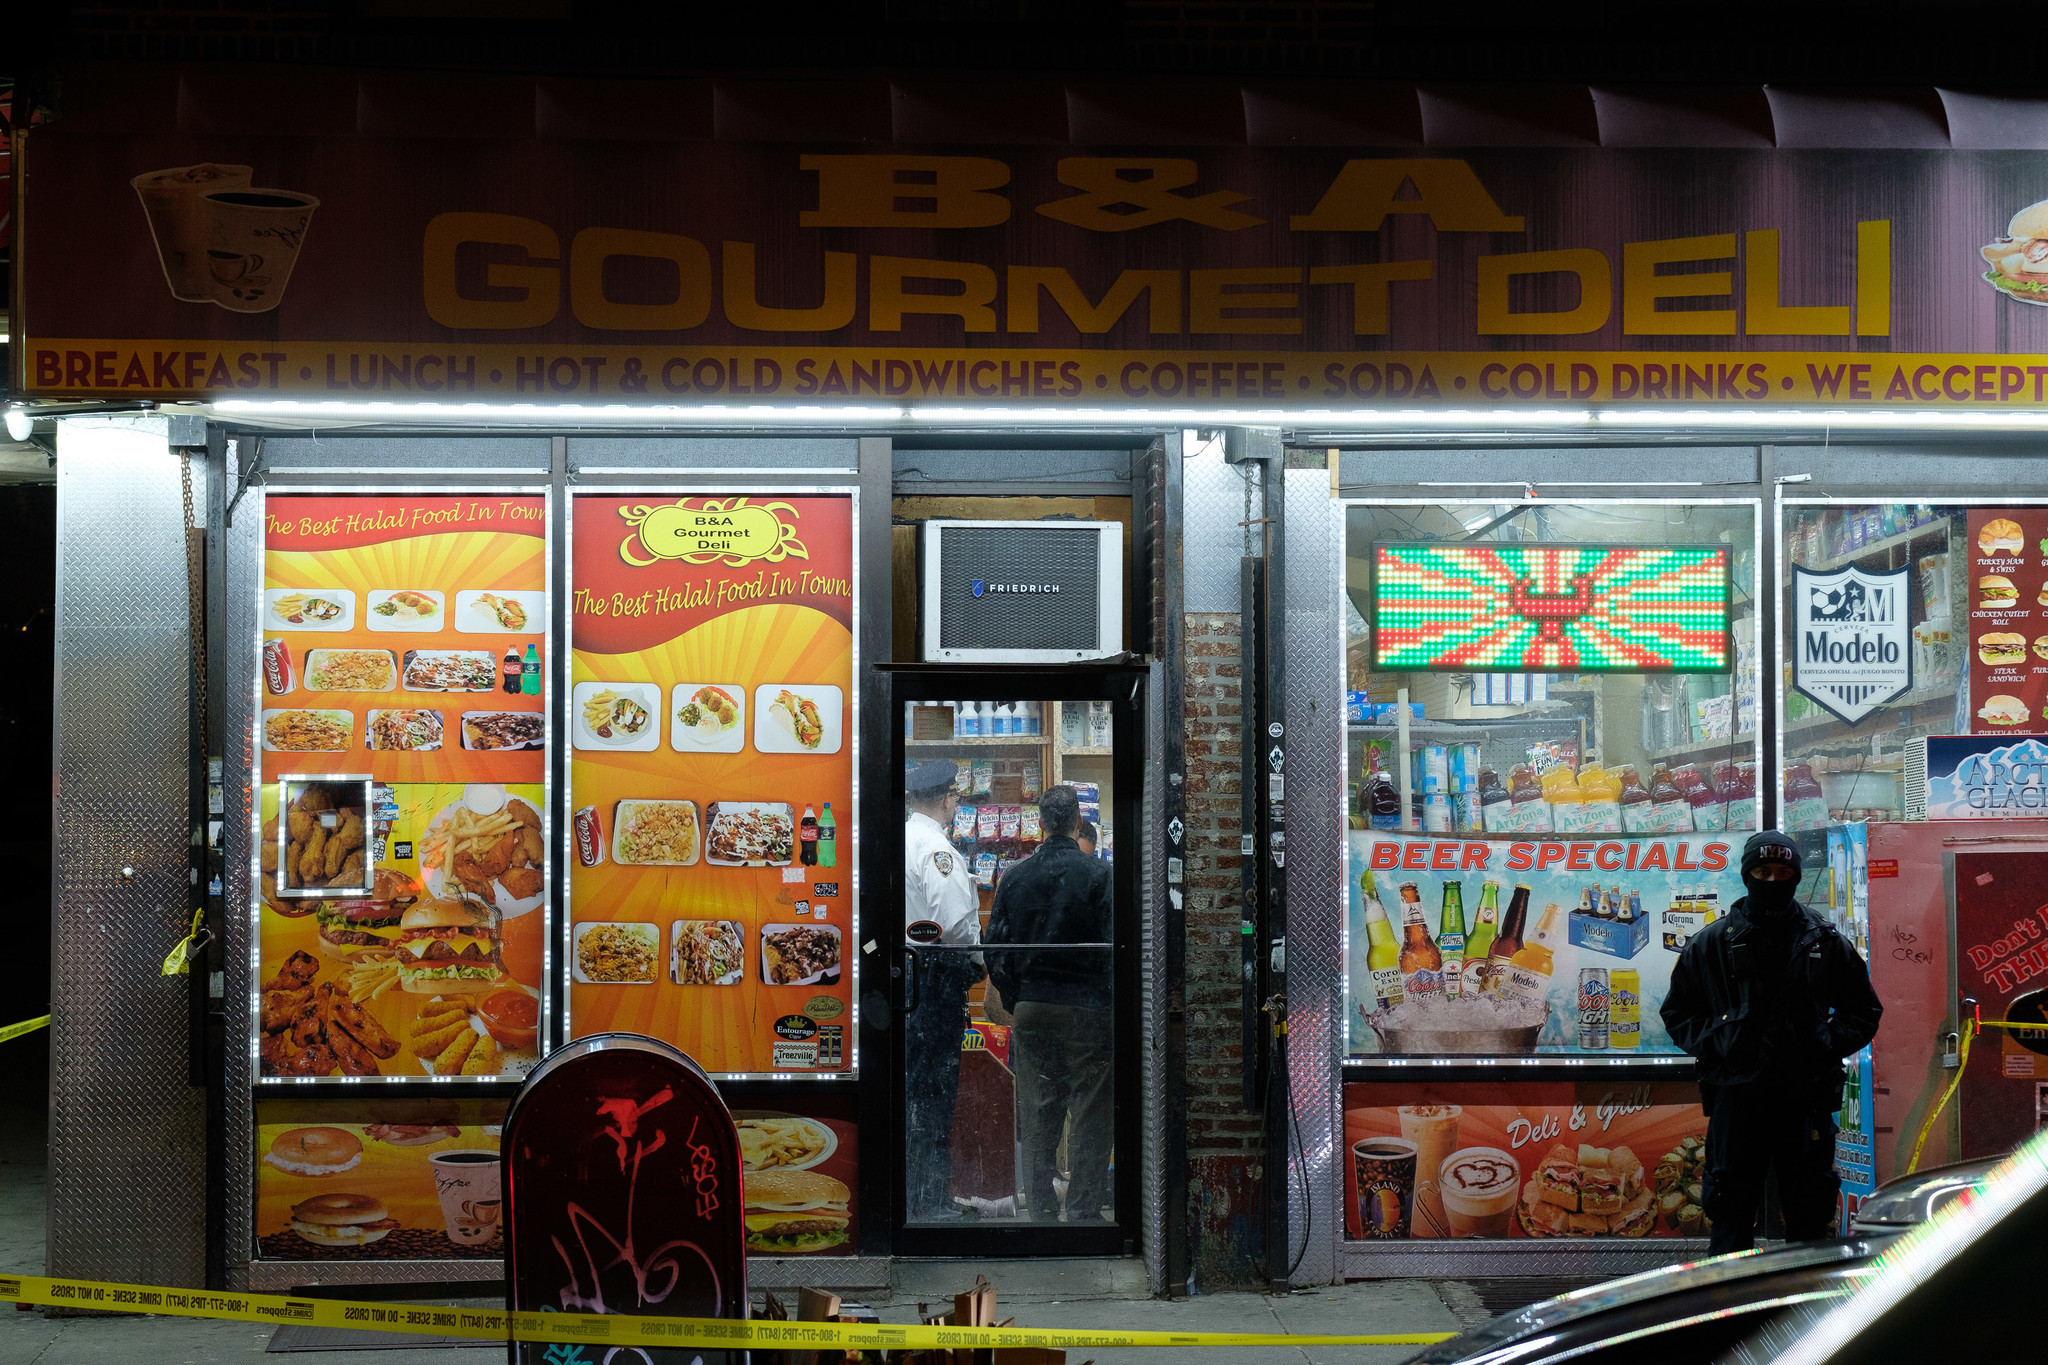 Man shot dead by wordless shooter in Bronx deli